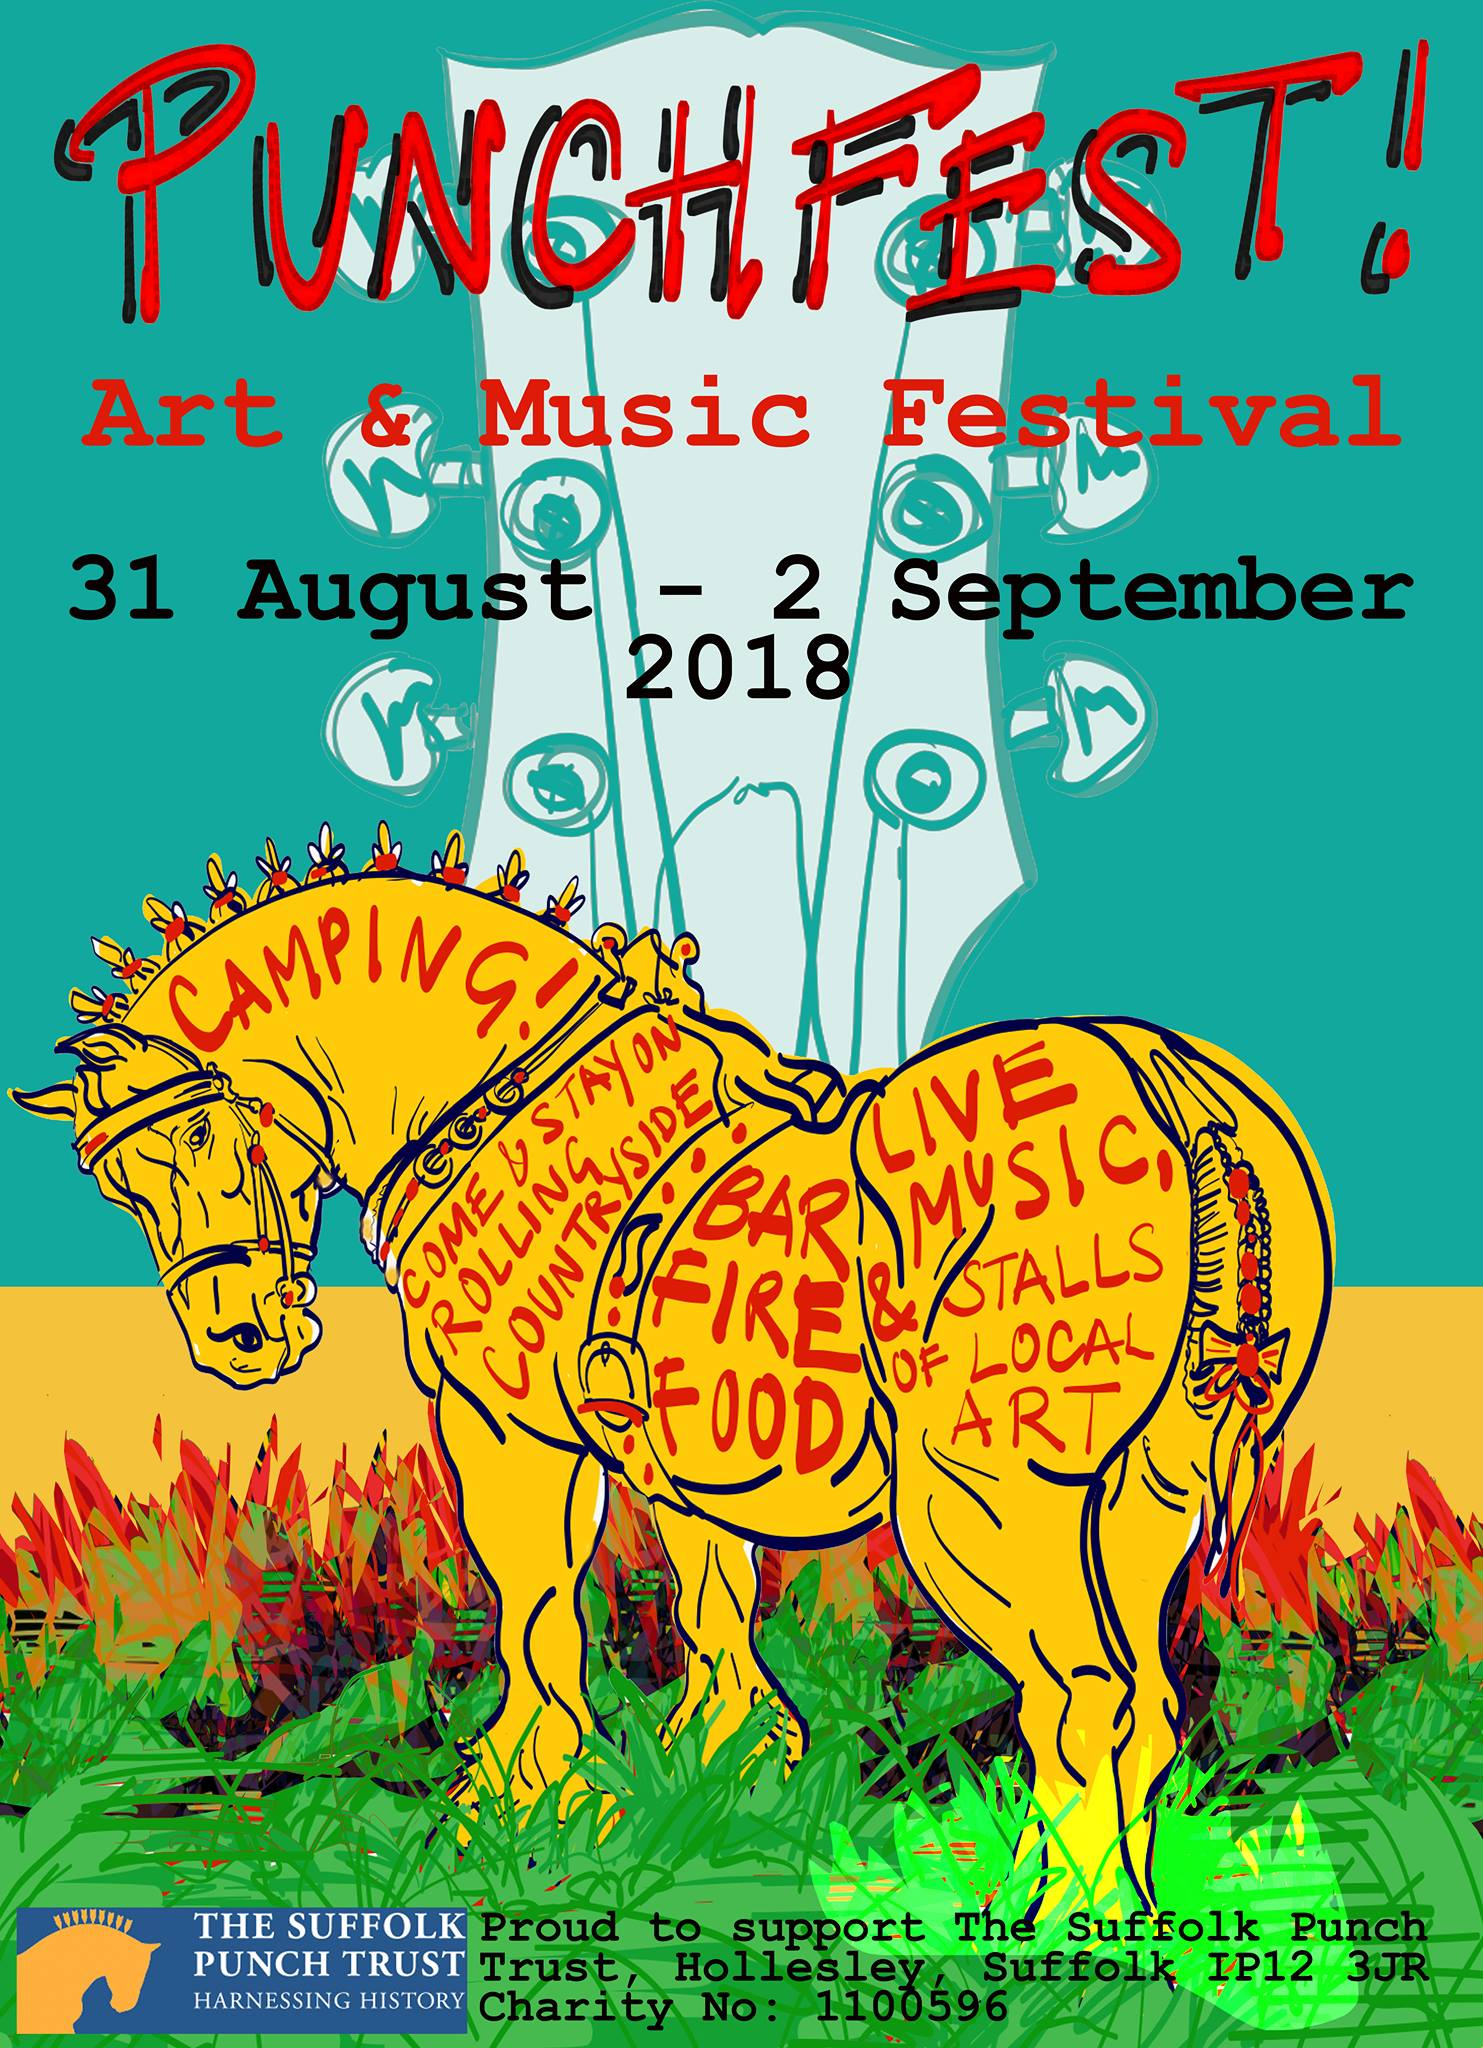 Punchfest Arts & Music Festival 2018: 31 August - 2 September, Hollesley, near Woodbridge.